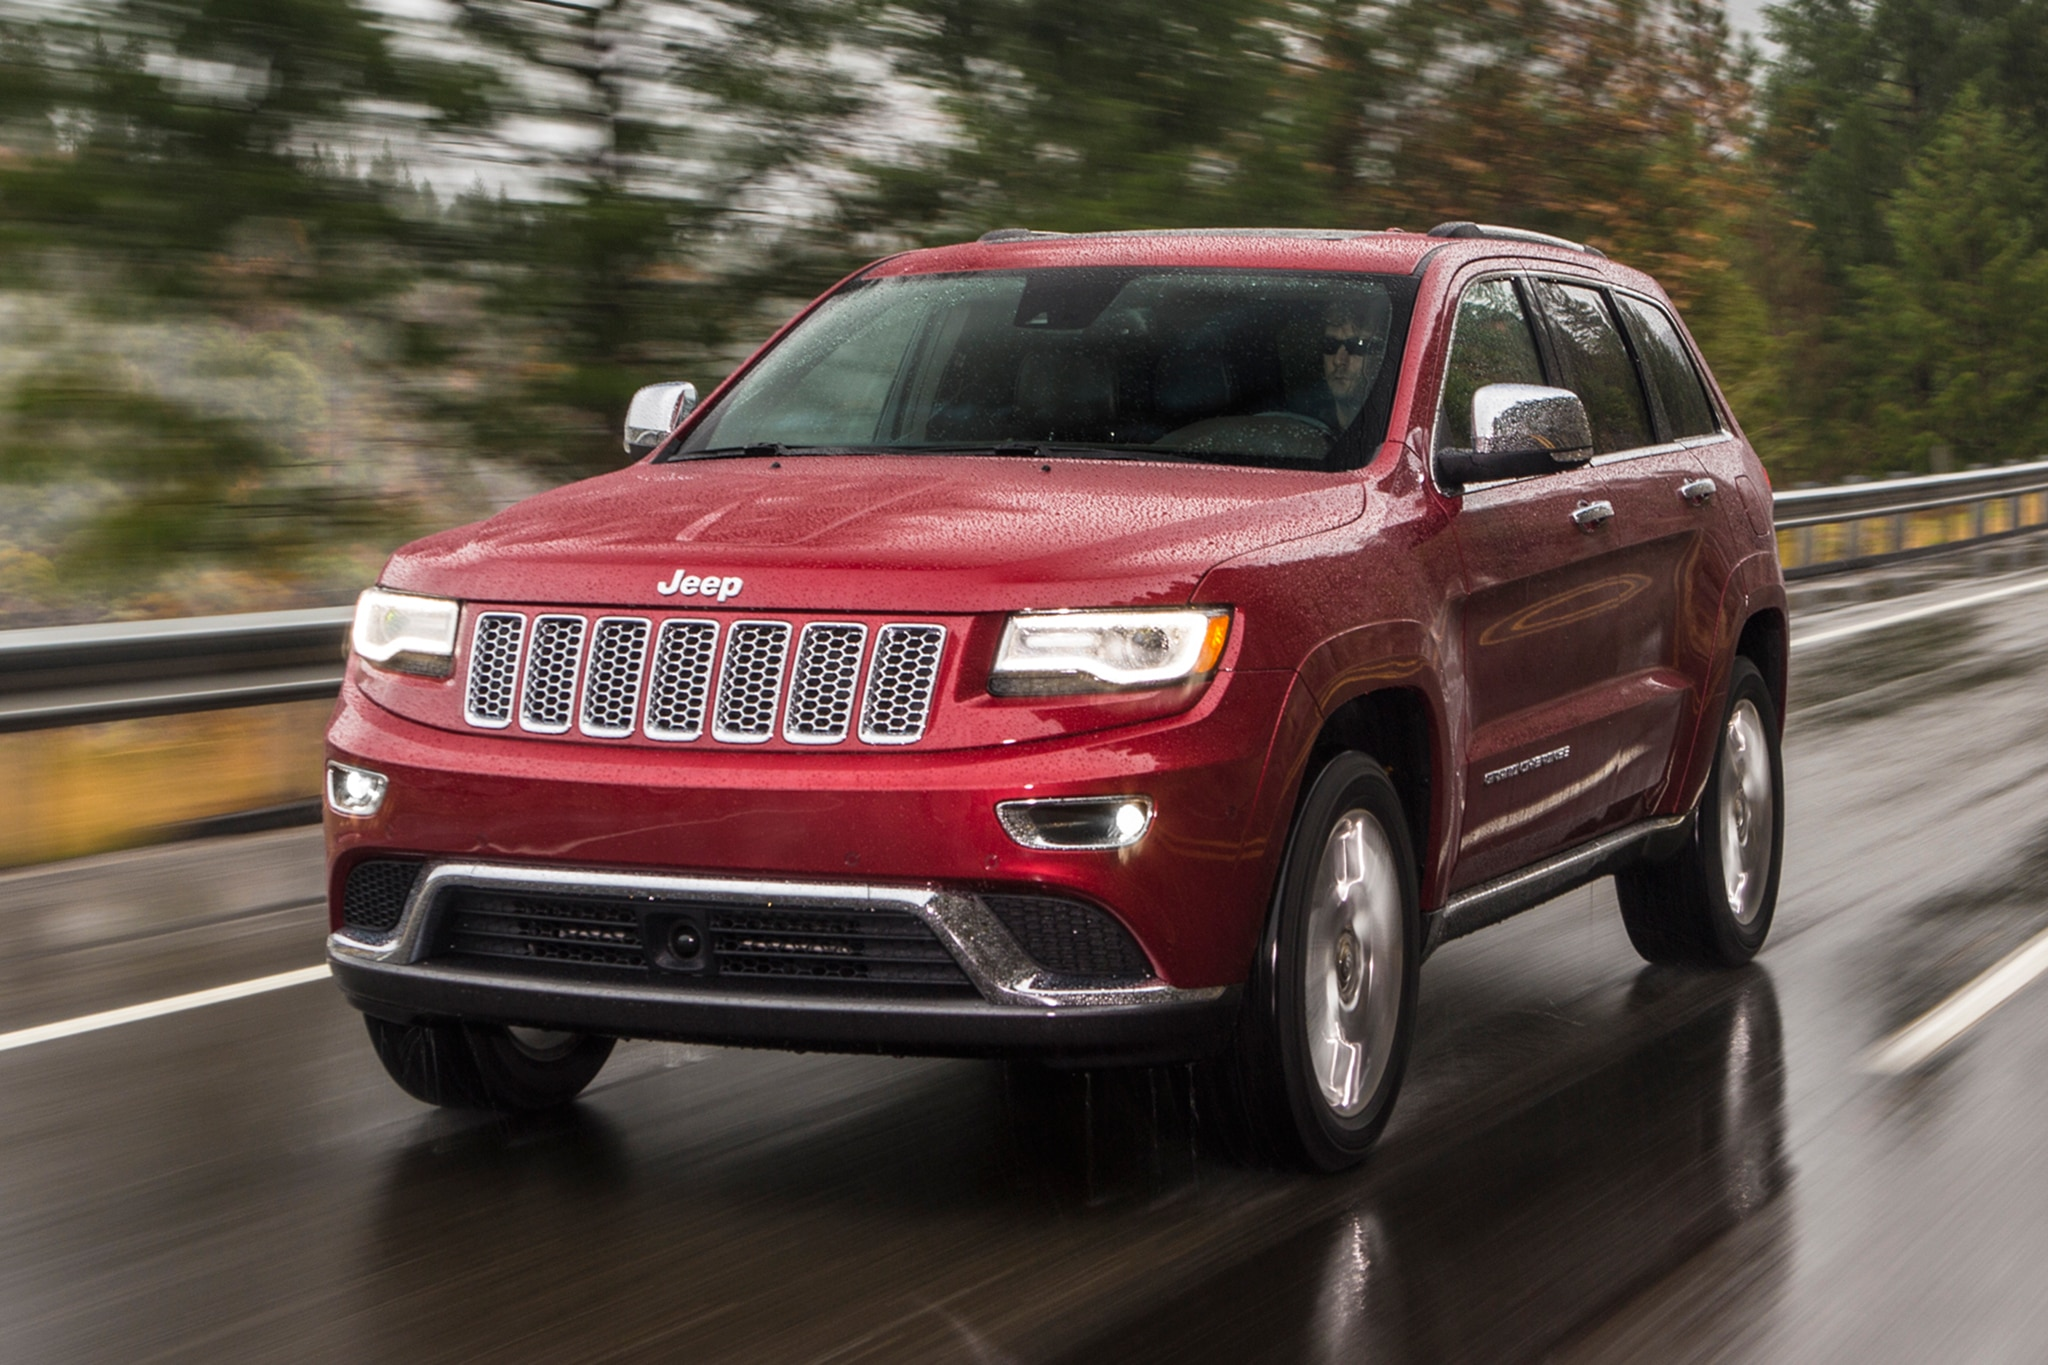 2011 2014 jeep grand cherokee dodge durango recalled automobile. Black Bedroom Furniture Sets. Home Design Ideas